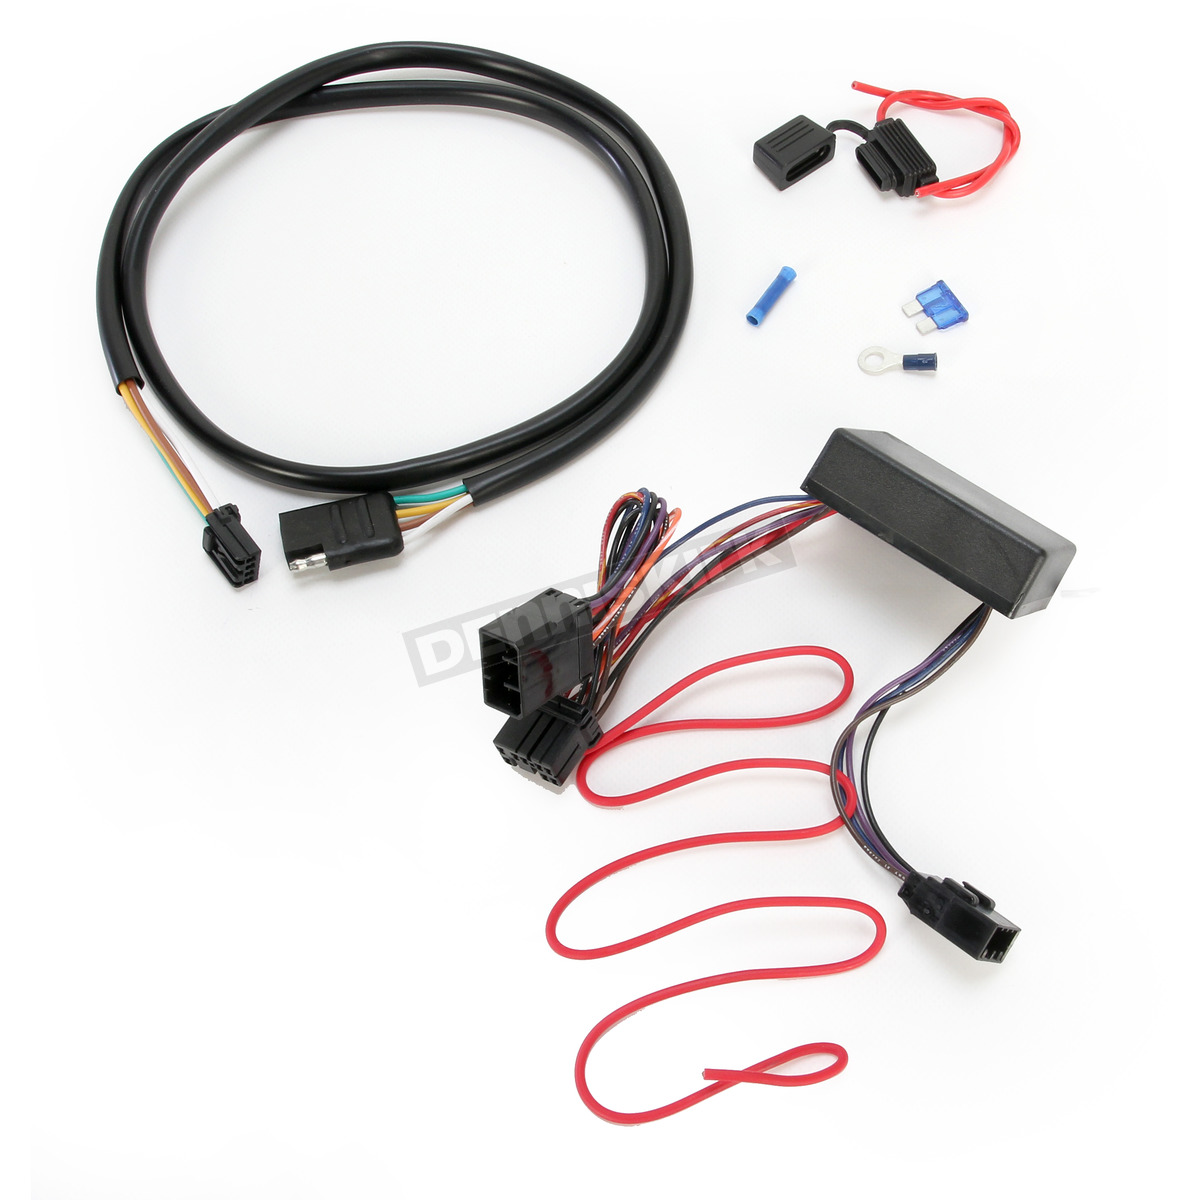 plug and play trailer wiring connector kit w 4 wire harness and isolator 720760 Dodge Trailer Wiring Harness